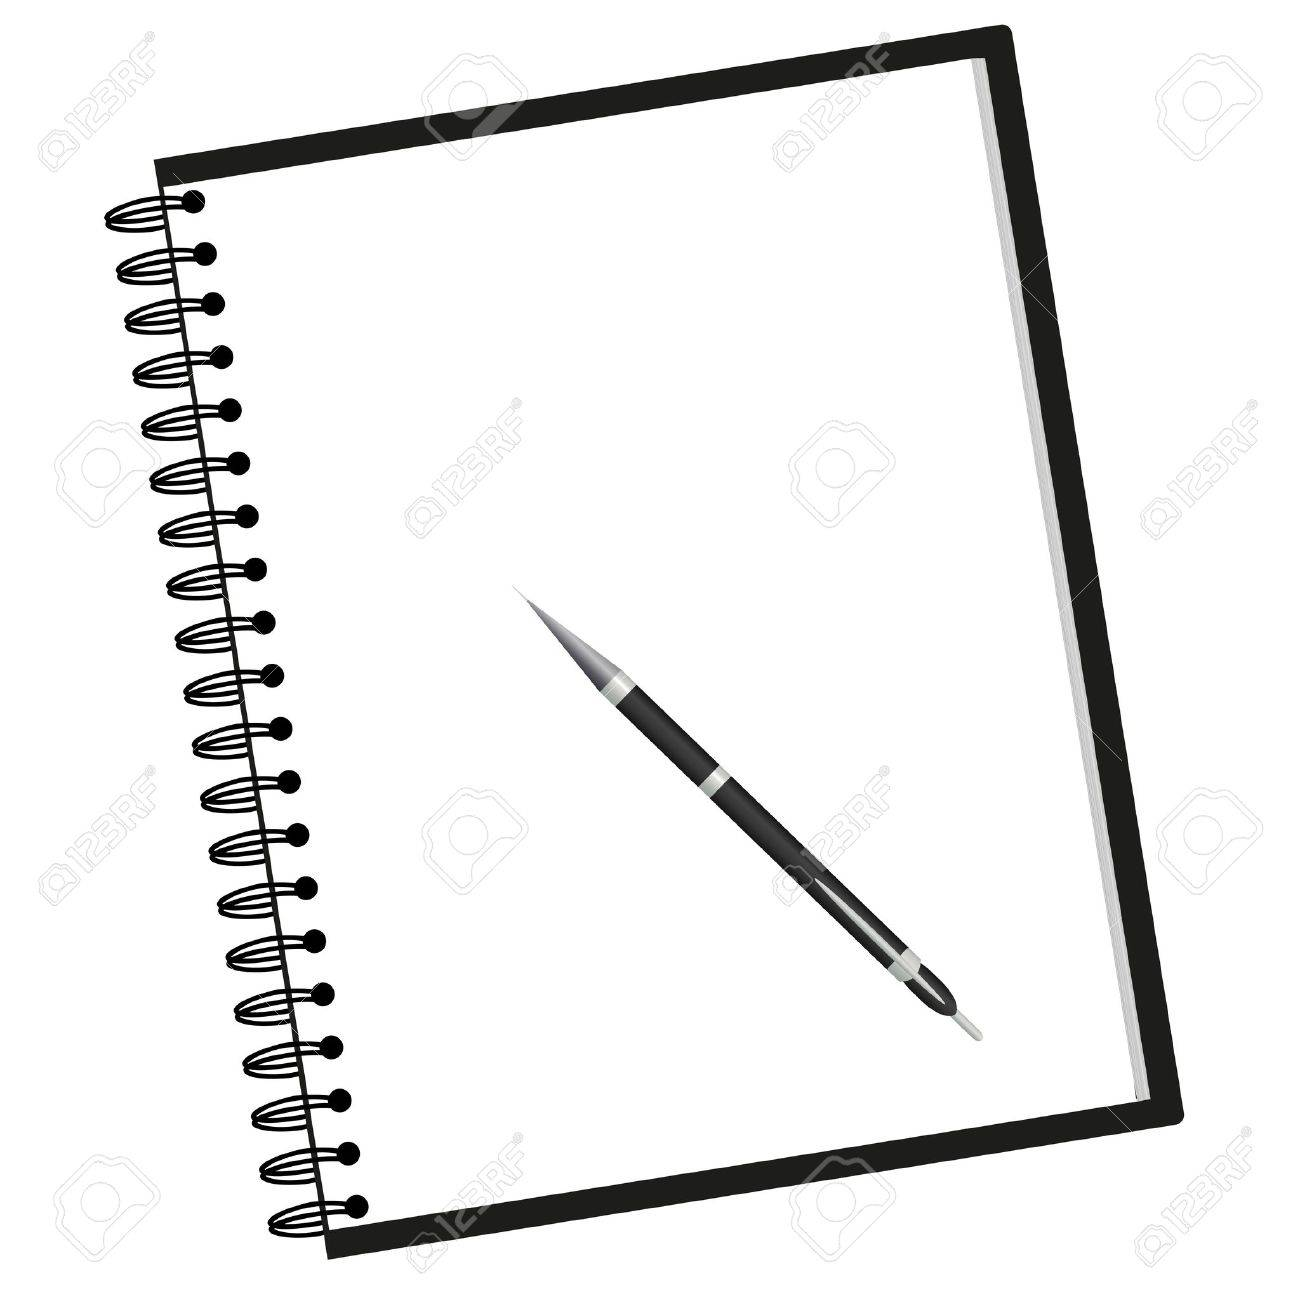 Notepad clipart black and white. Notebook free download best